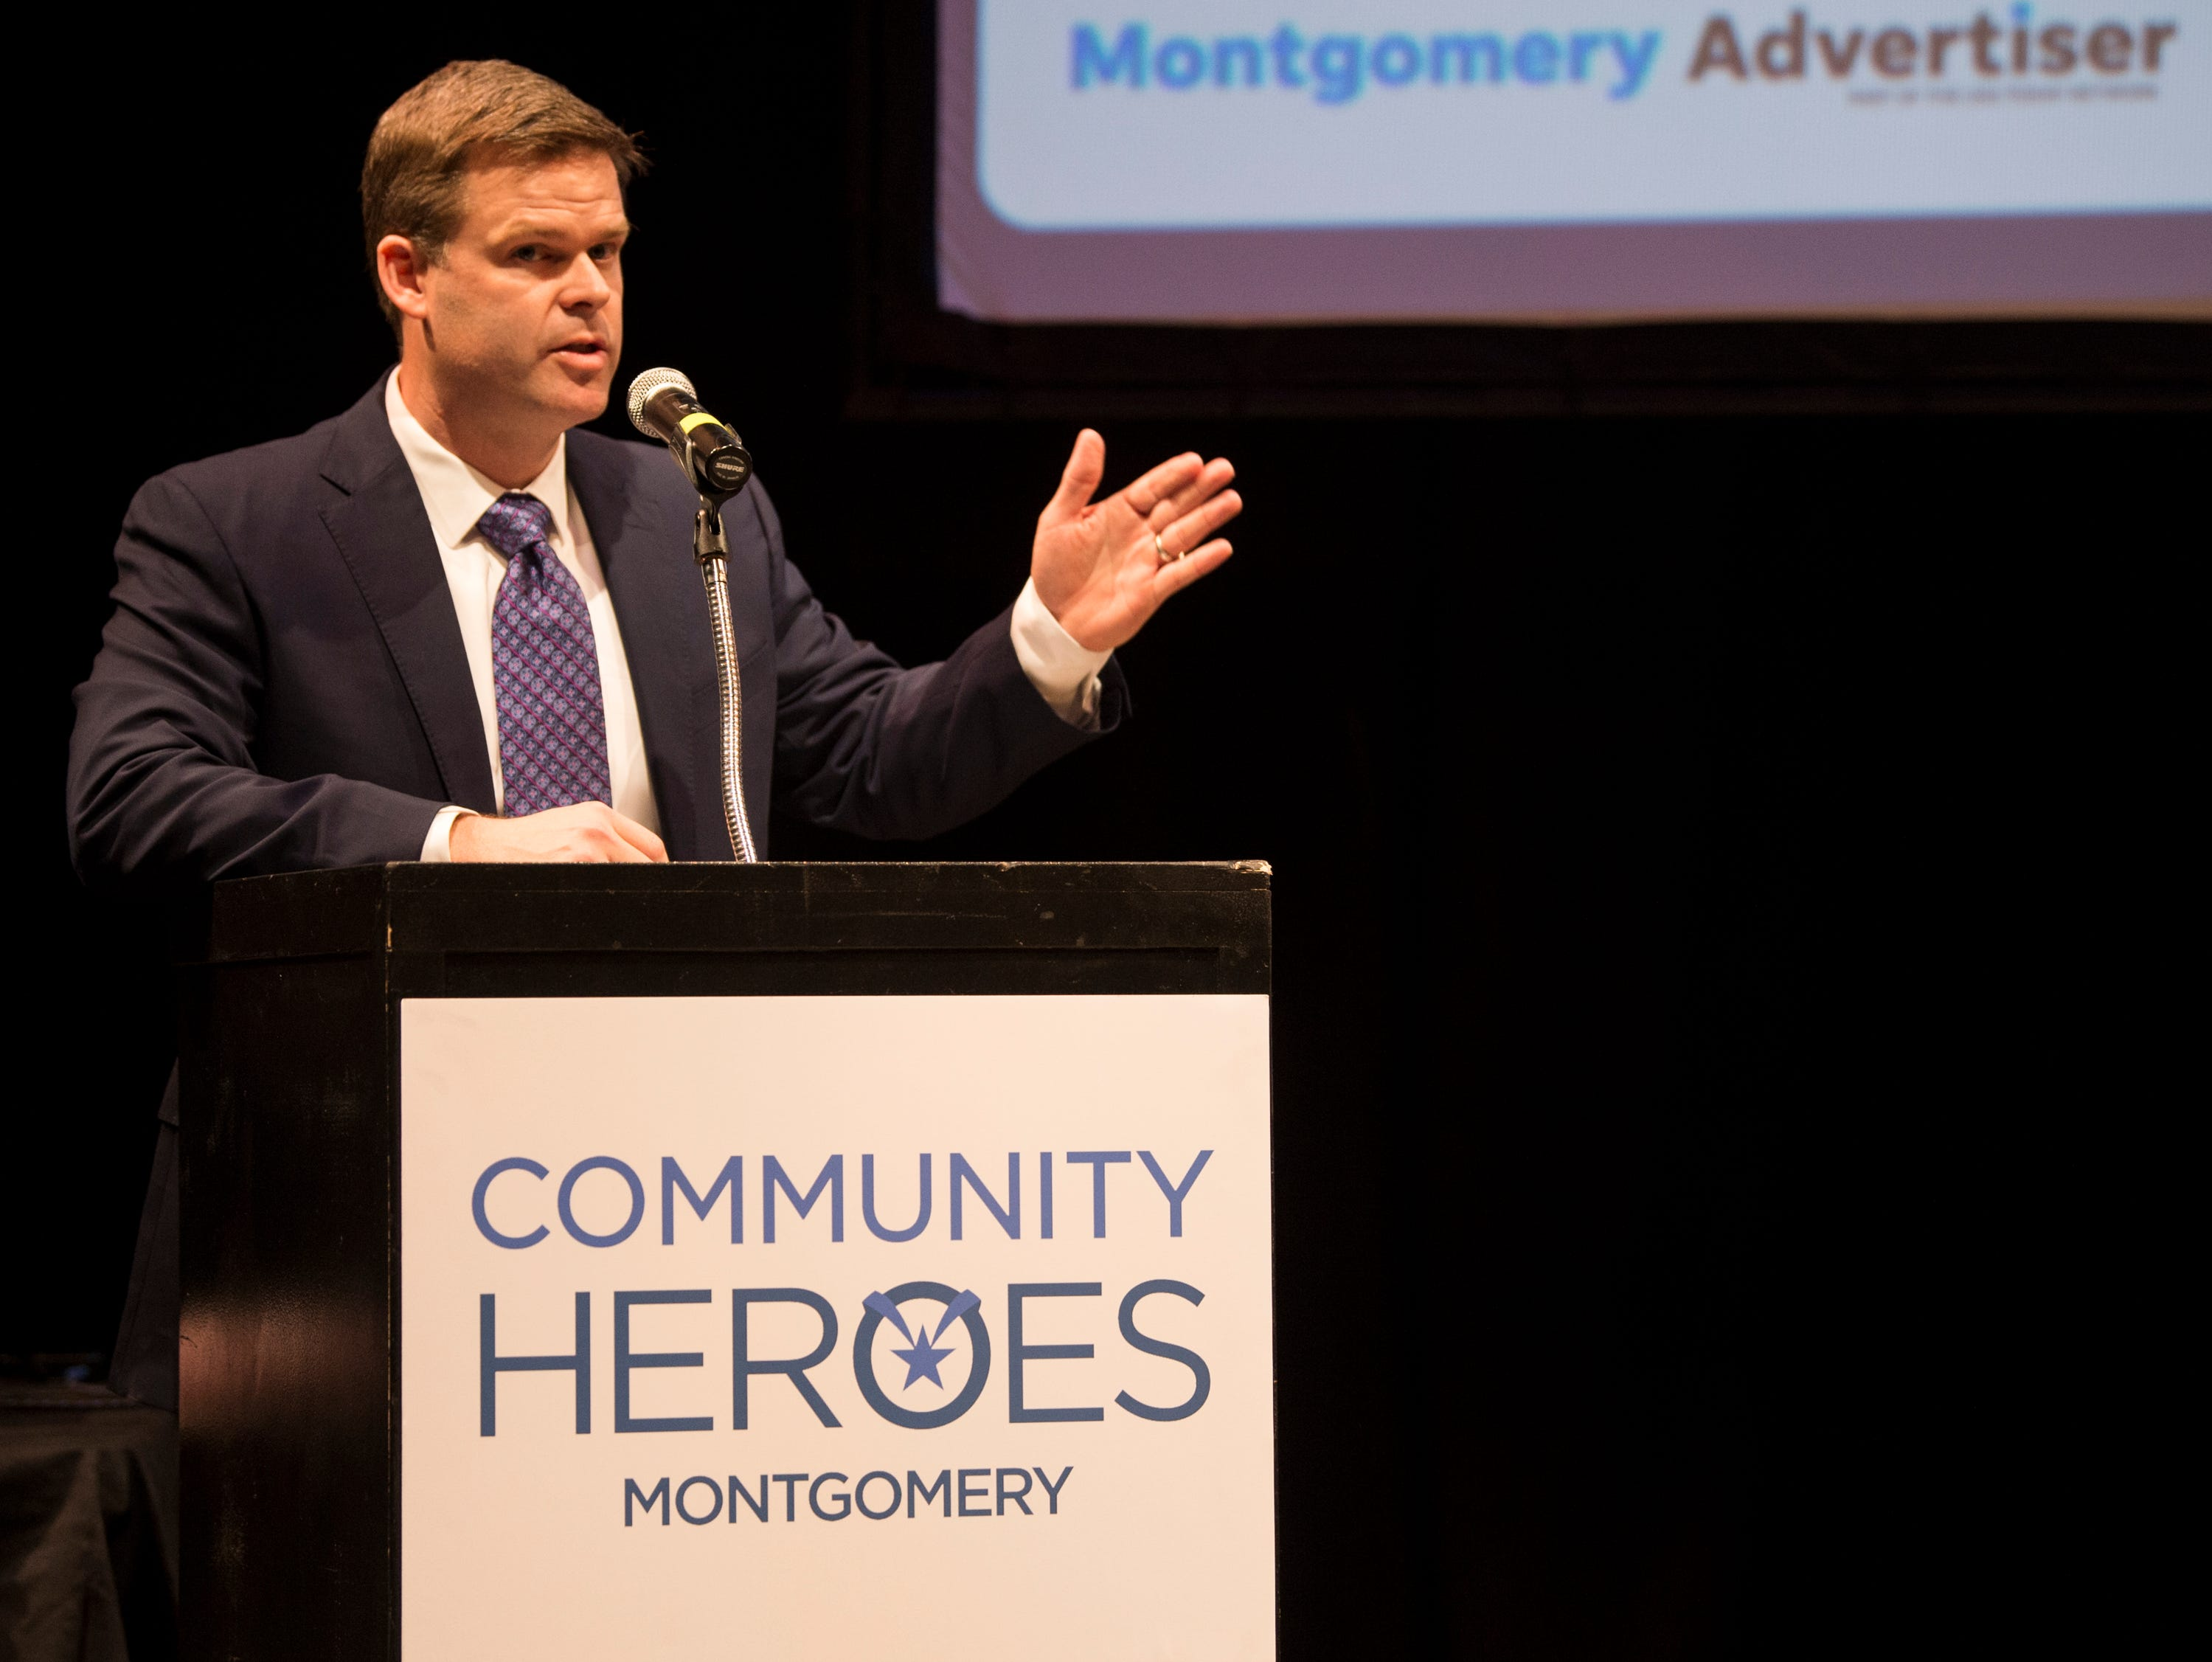 Montgomery Advertiser executive editor Bro Krift during the Community Heroes awards ceremony at Alabama Shakespeare Festival in Montgomery, Ala., on Tuesday, Jan. 8, 2019.